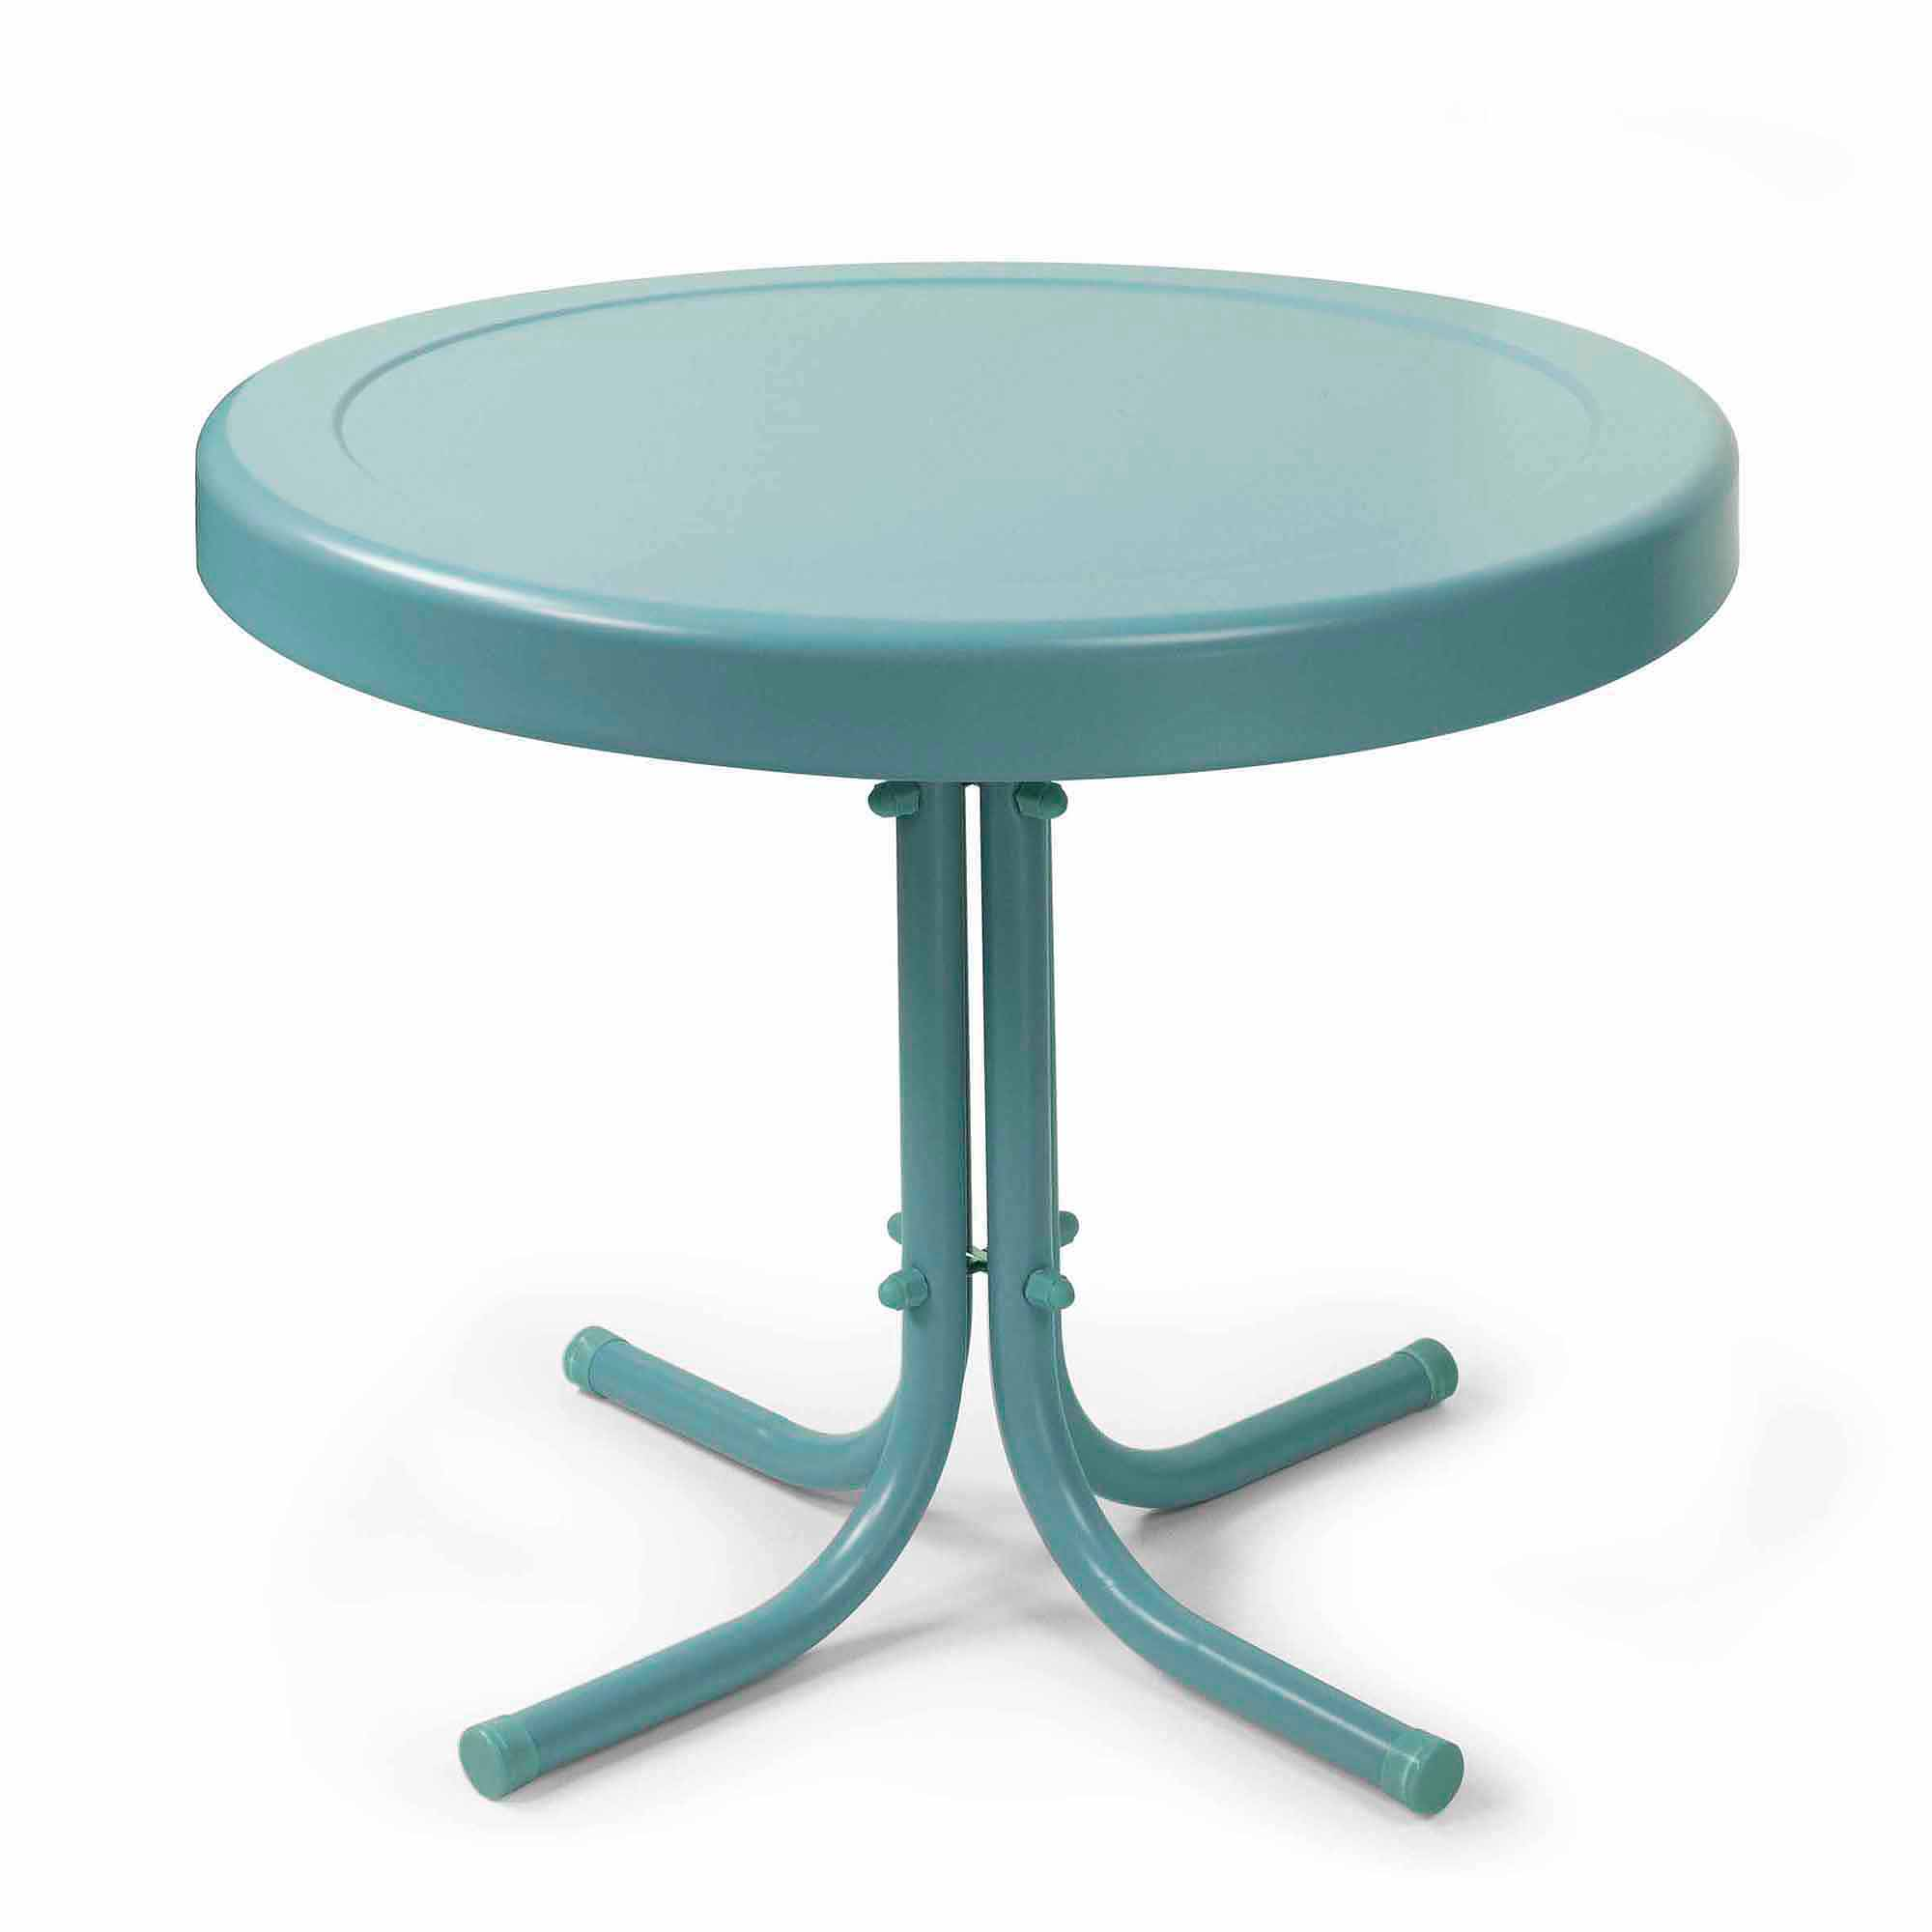 small iron table probably perfect cool teal blue end ideas crosley furniture retro metal side coffee set dining room chairs kijiji ethan big lots rugs tempur pedic dog target